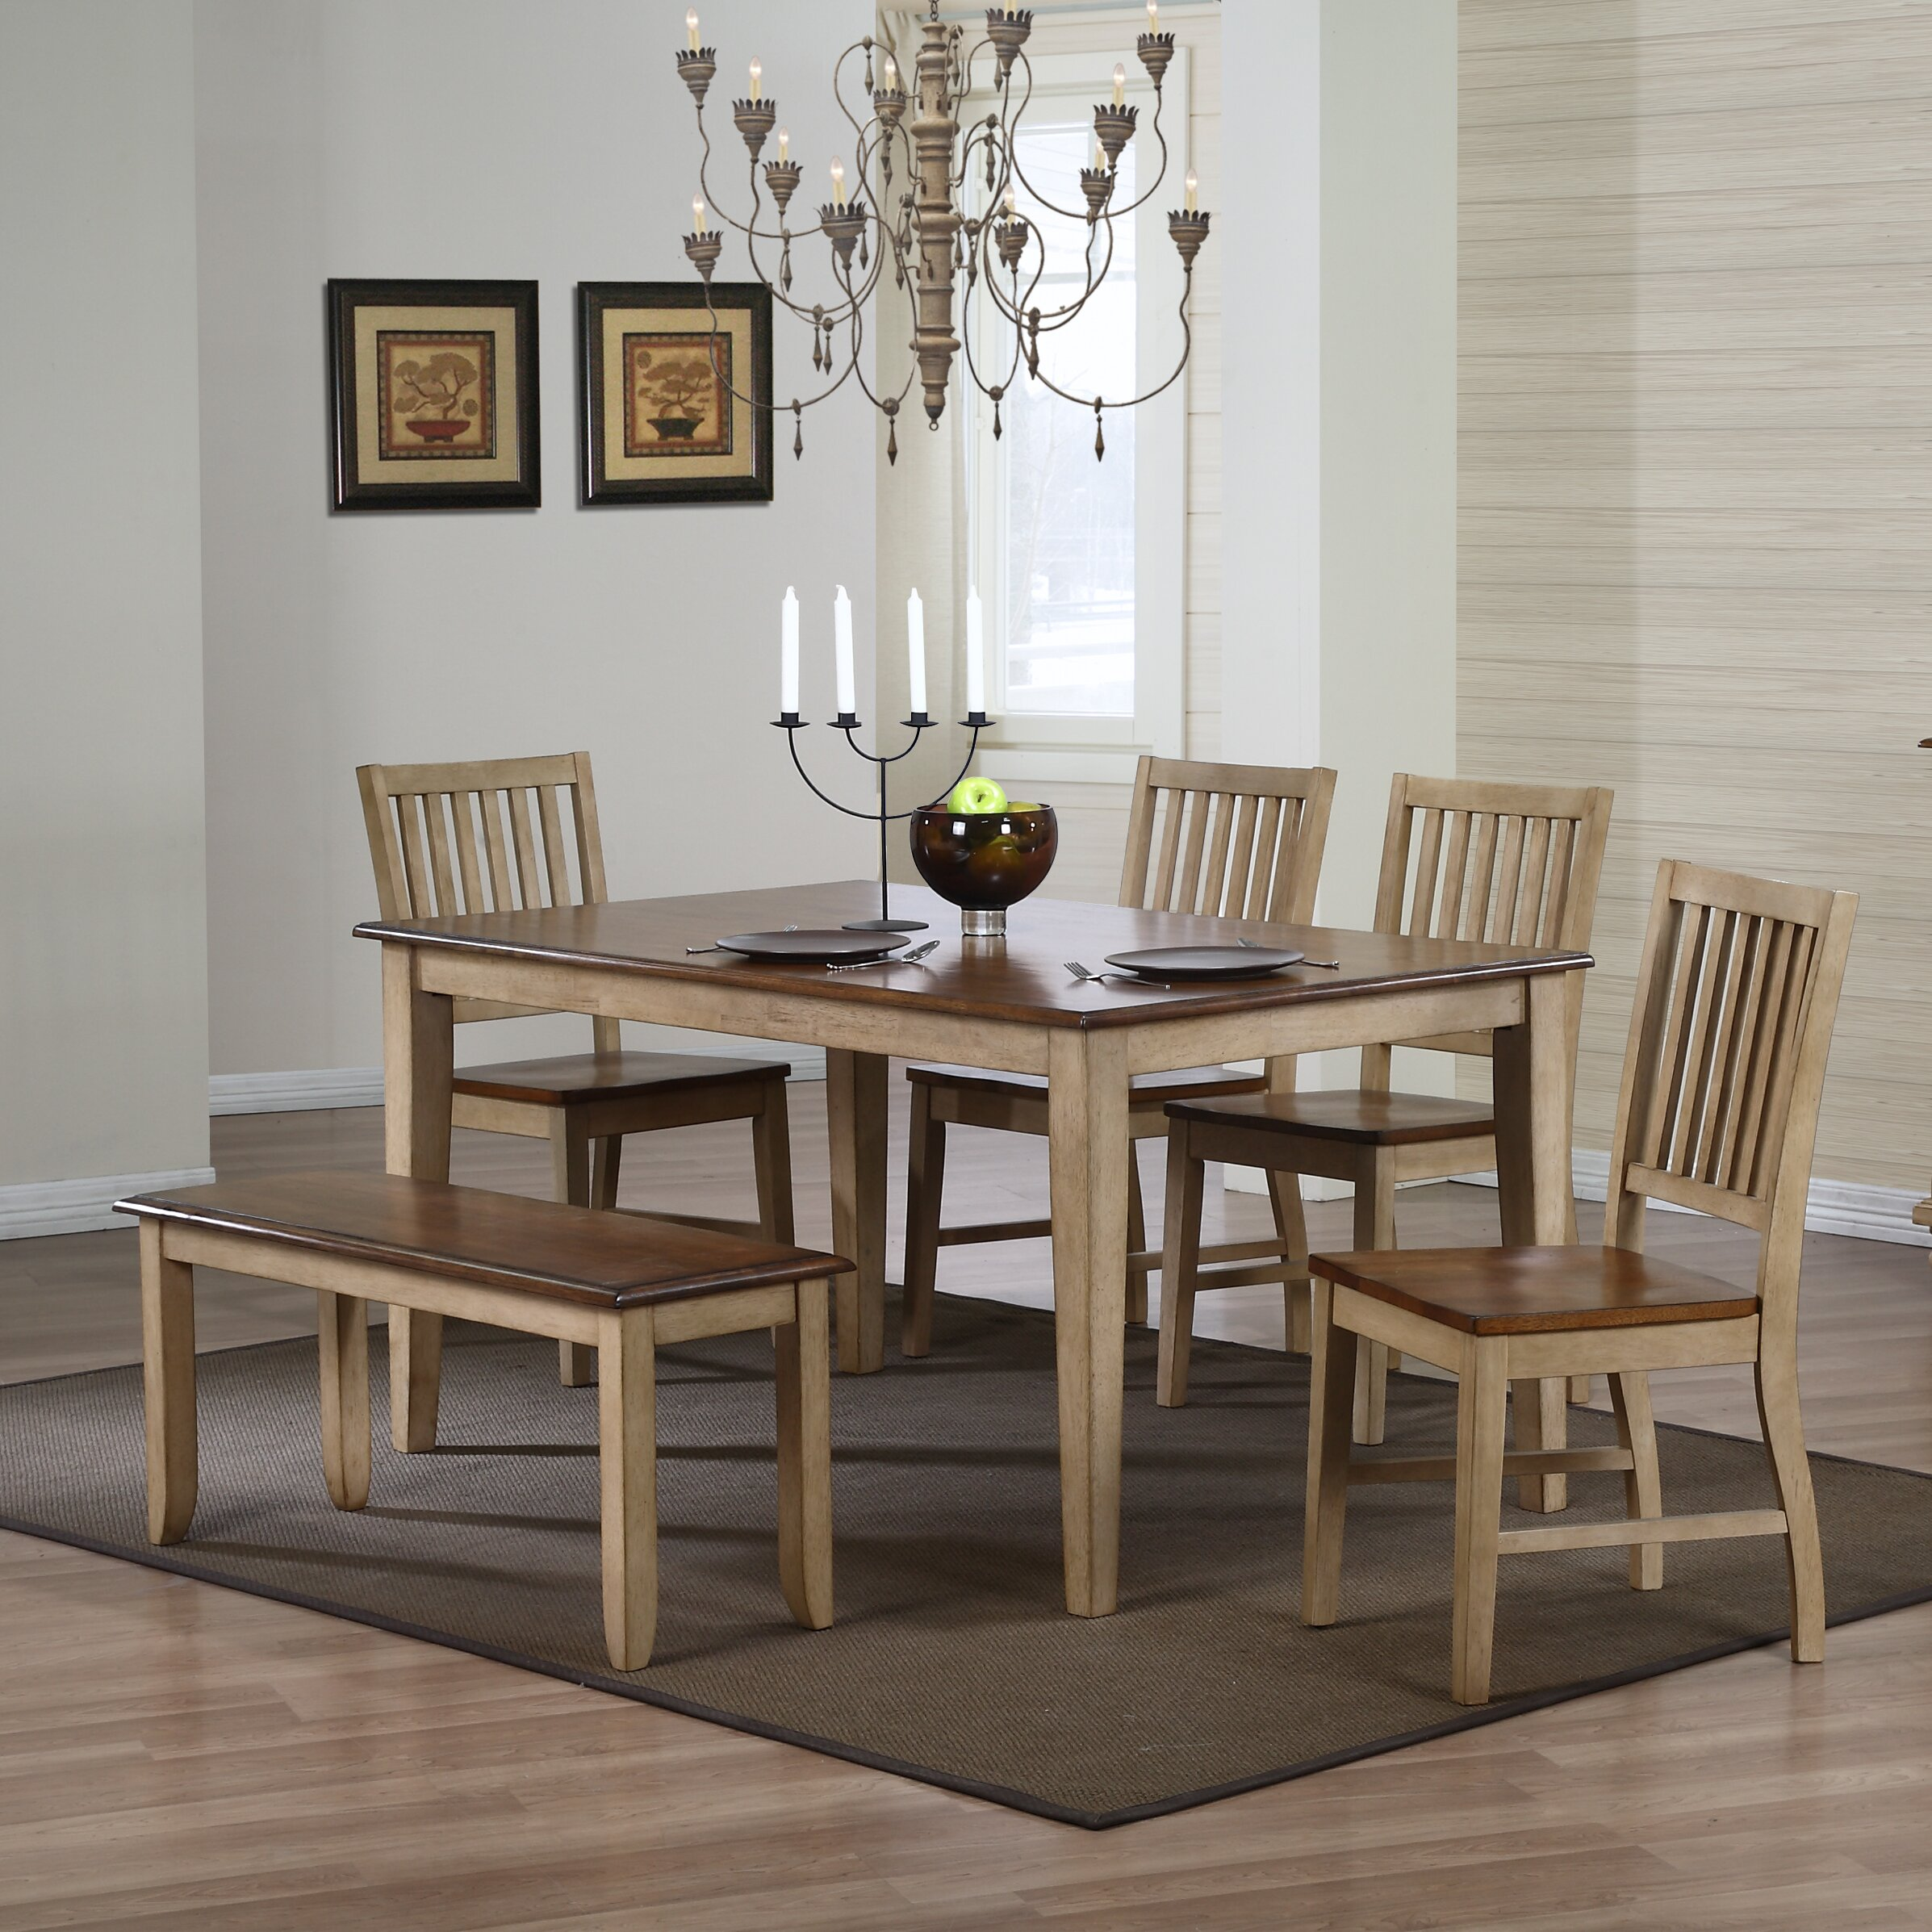 Sunset trading brook 6 piece dining set reviews wayfair for Dining room sets 6 piece